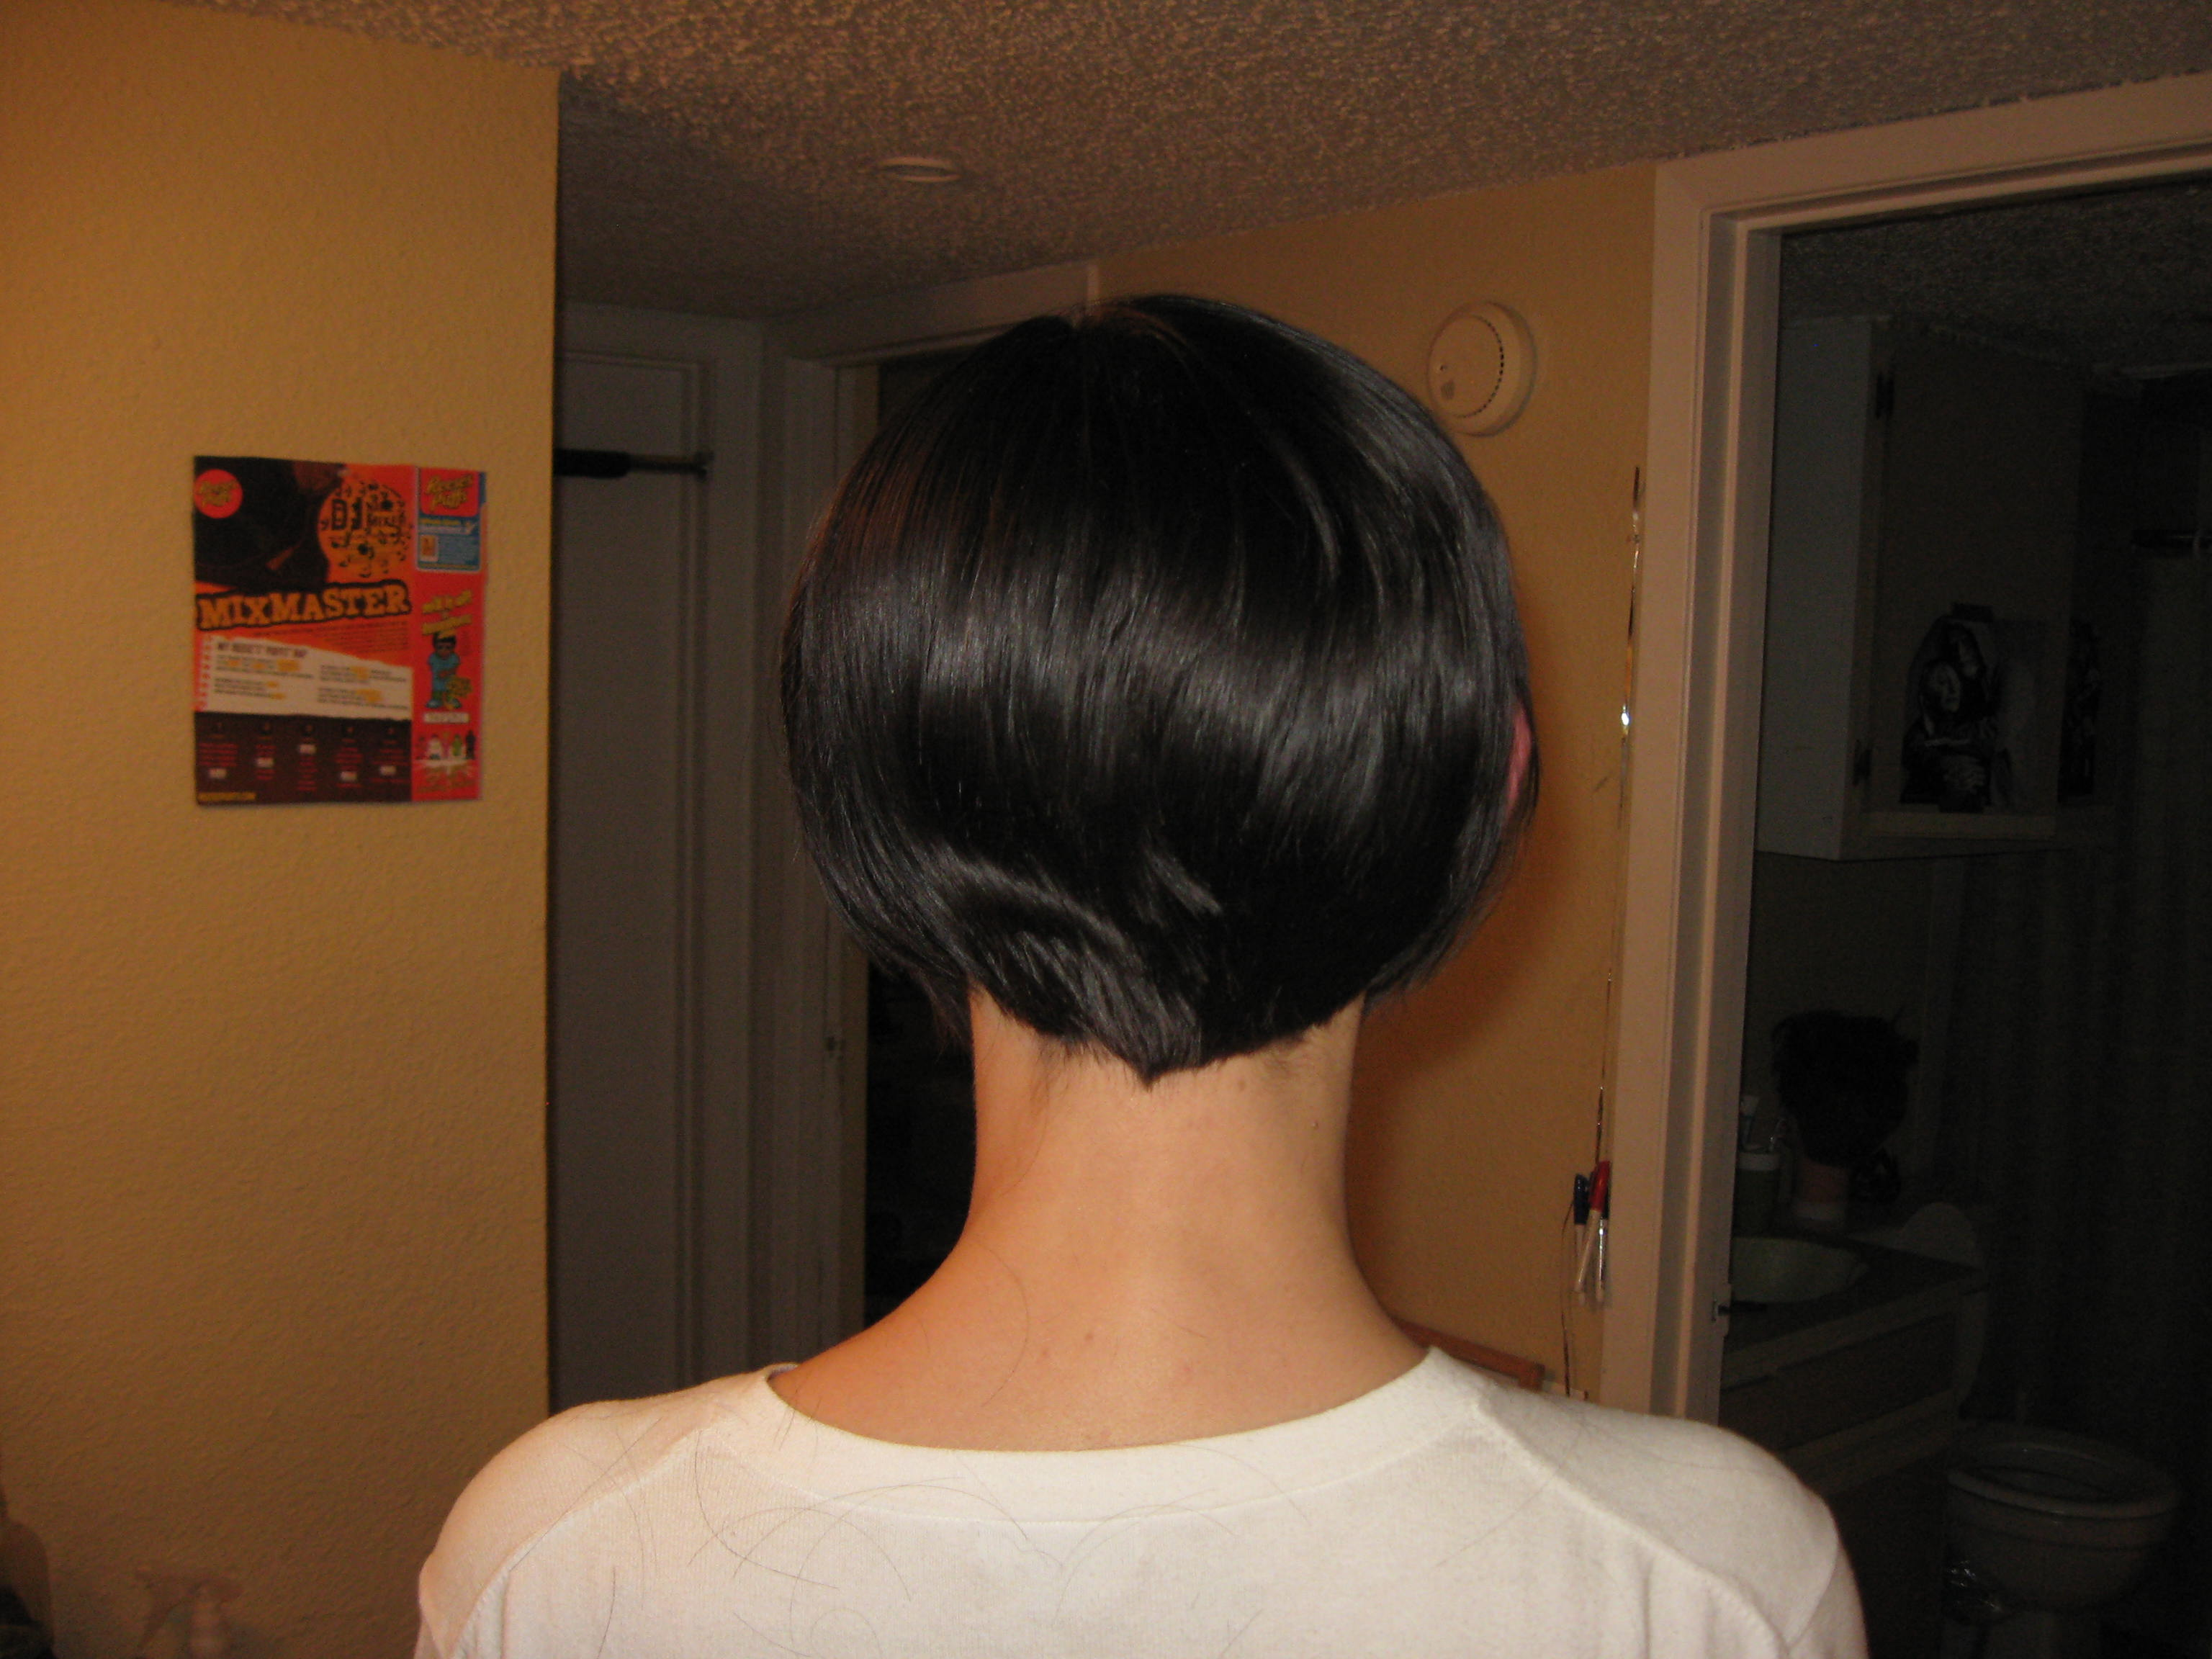 Very Short Bob Hairstyles Back View Here's the after back view: